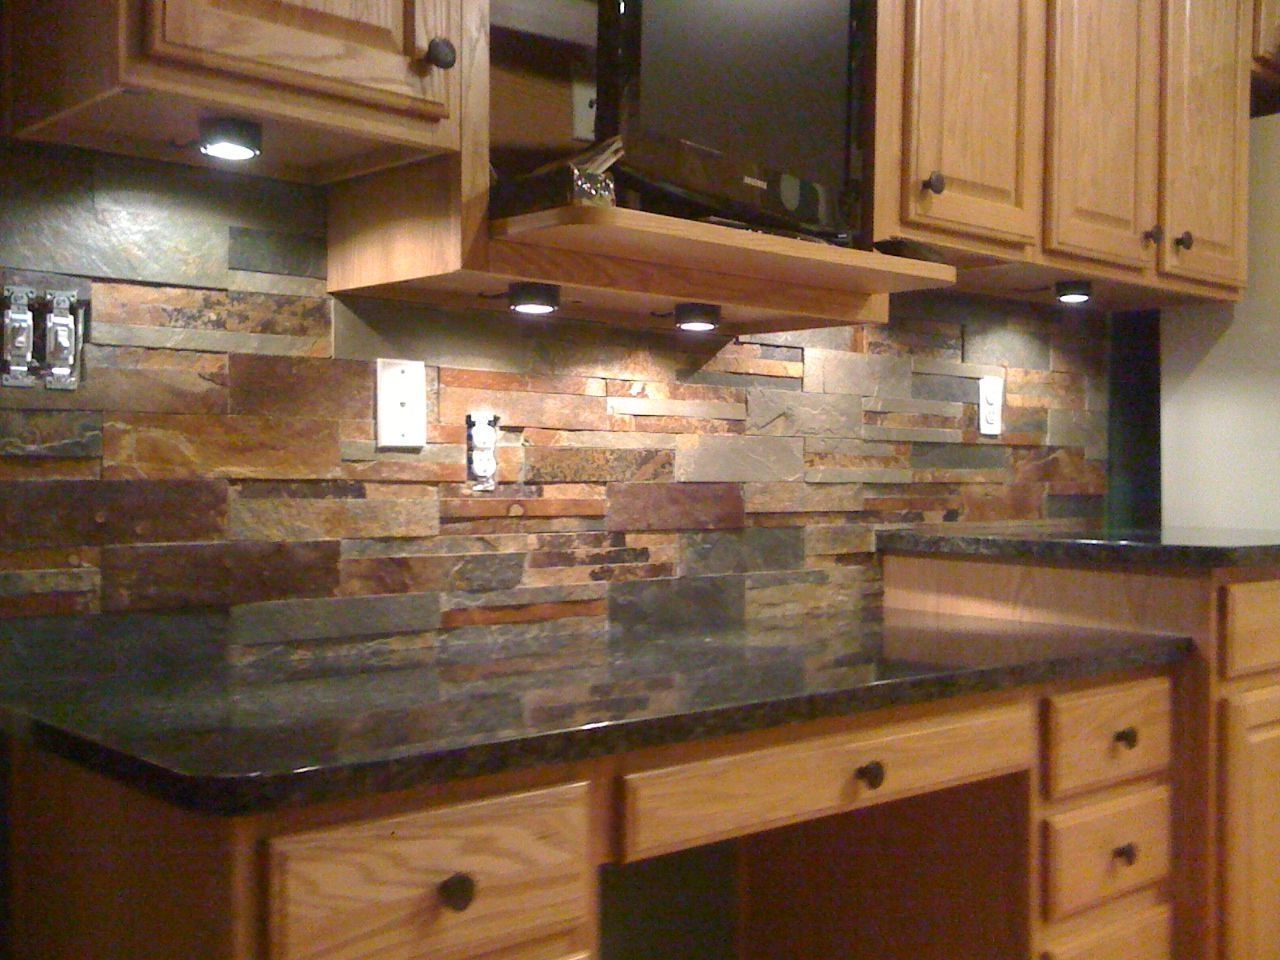 Stone Kitchen Design Kitchen Design Kitchen Design Stone Veneer Kitchen Backsplash 20 Rustic Kitchen Backsplash Stone Backsplash Kitchen Modern Kitchen Tiles